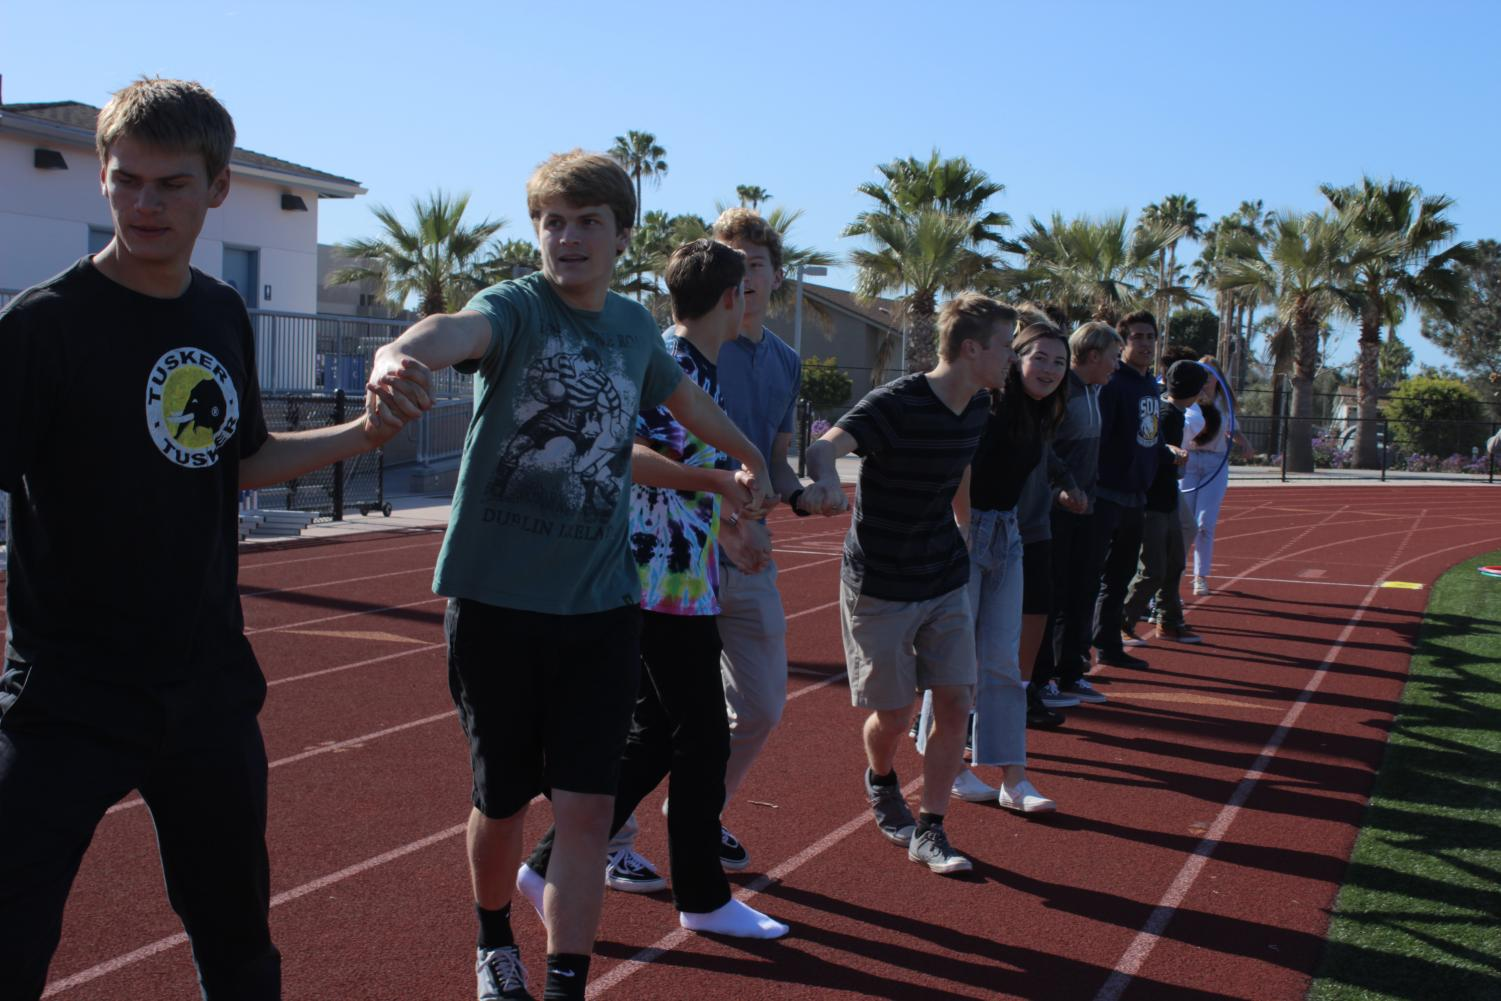 Students link arms as part of the relay race event.